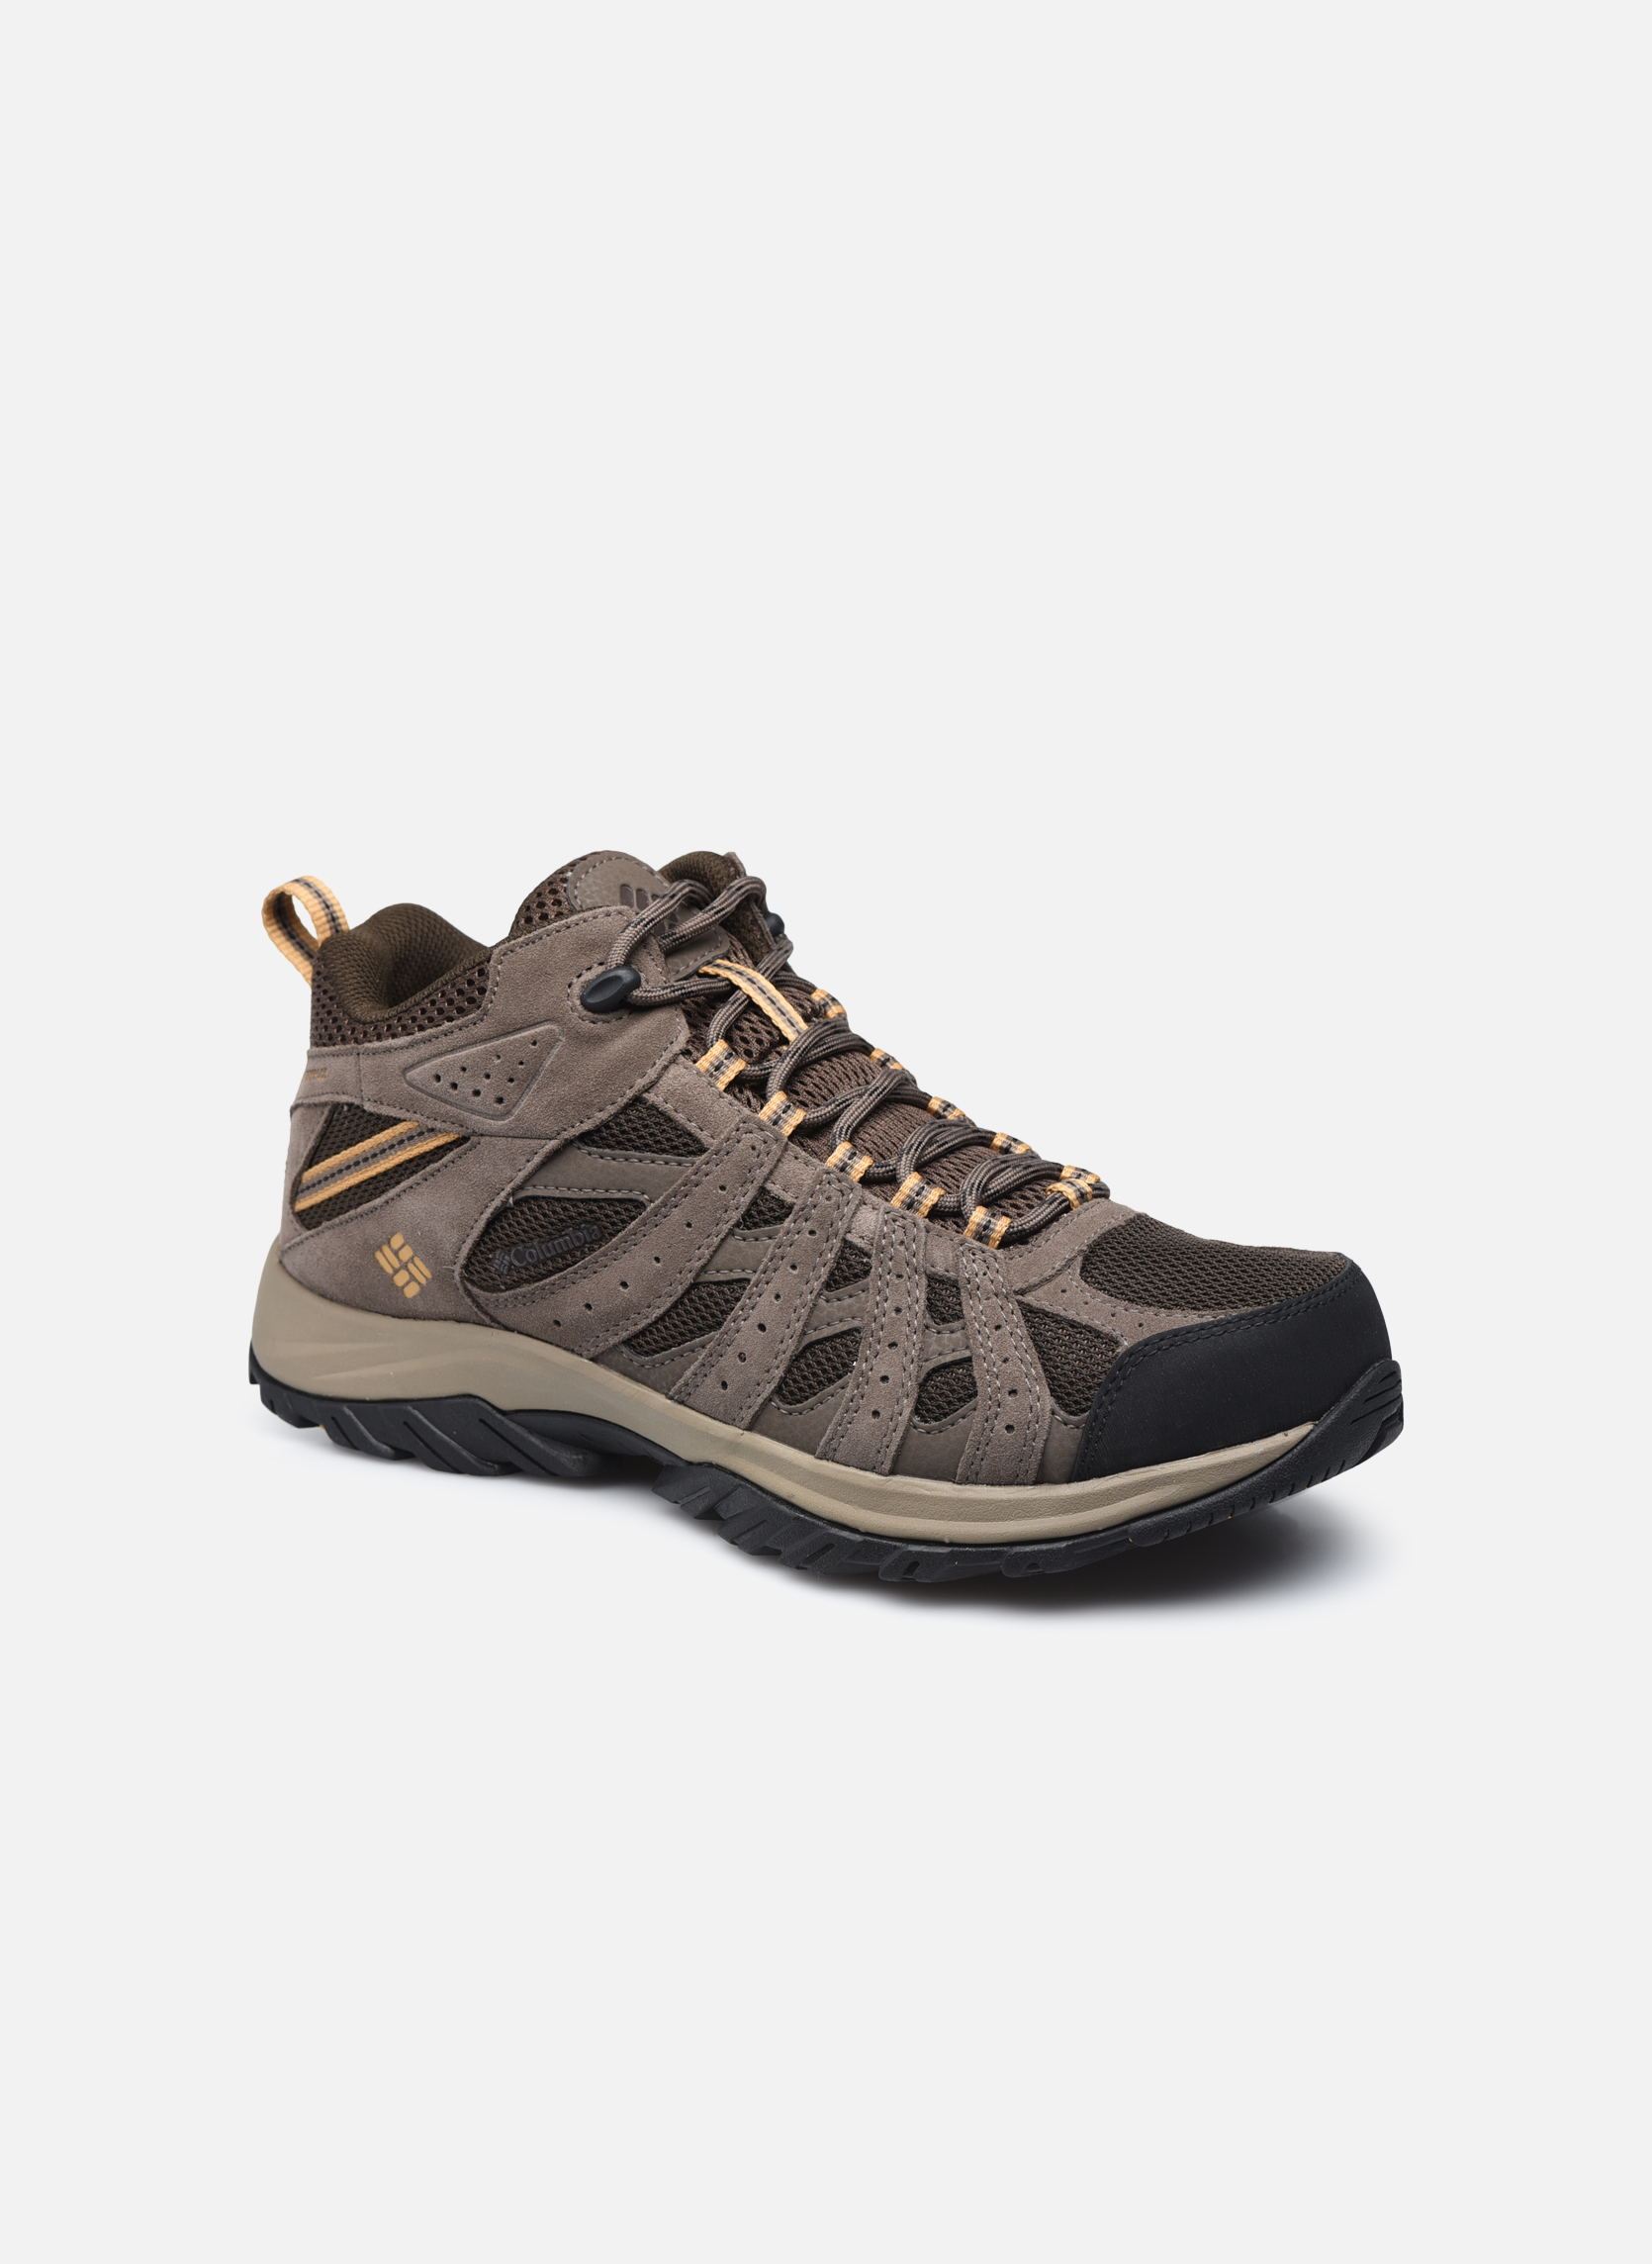 Canyon Point Mid Waterproof